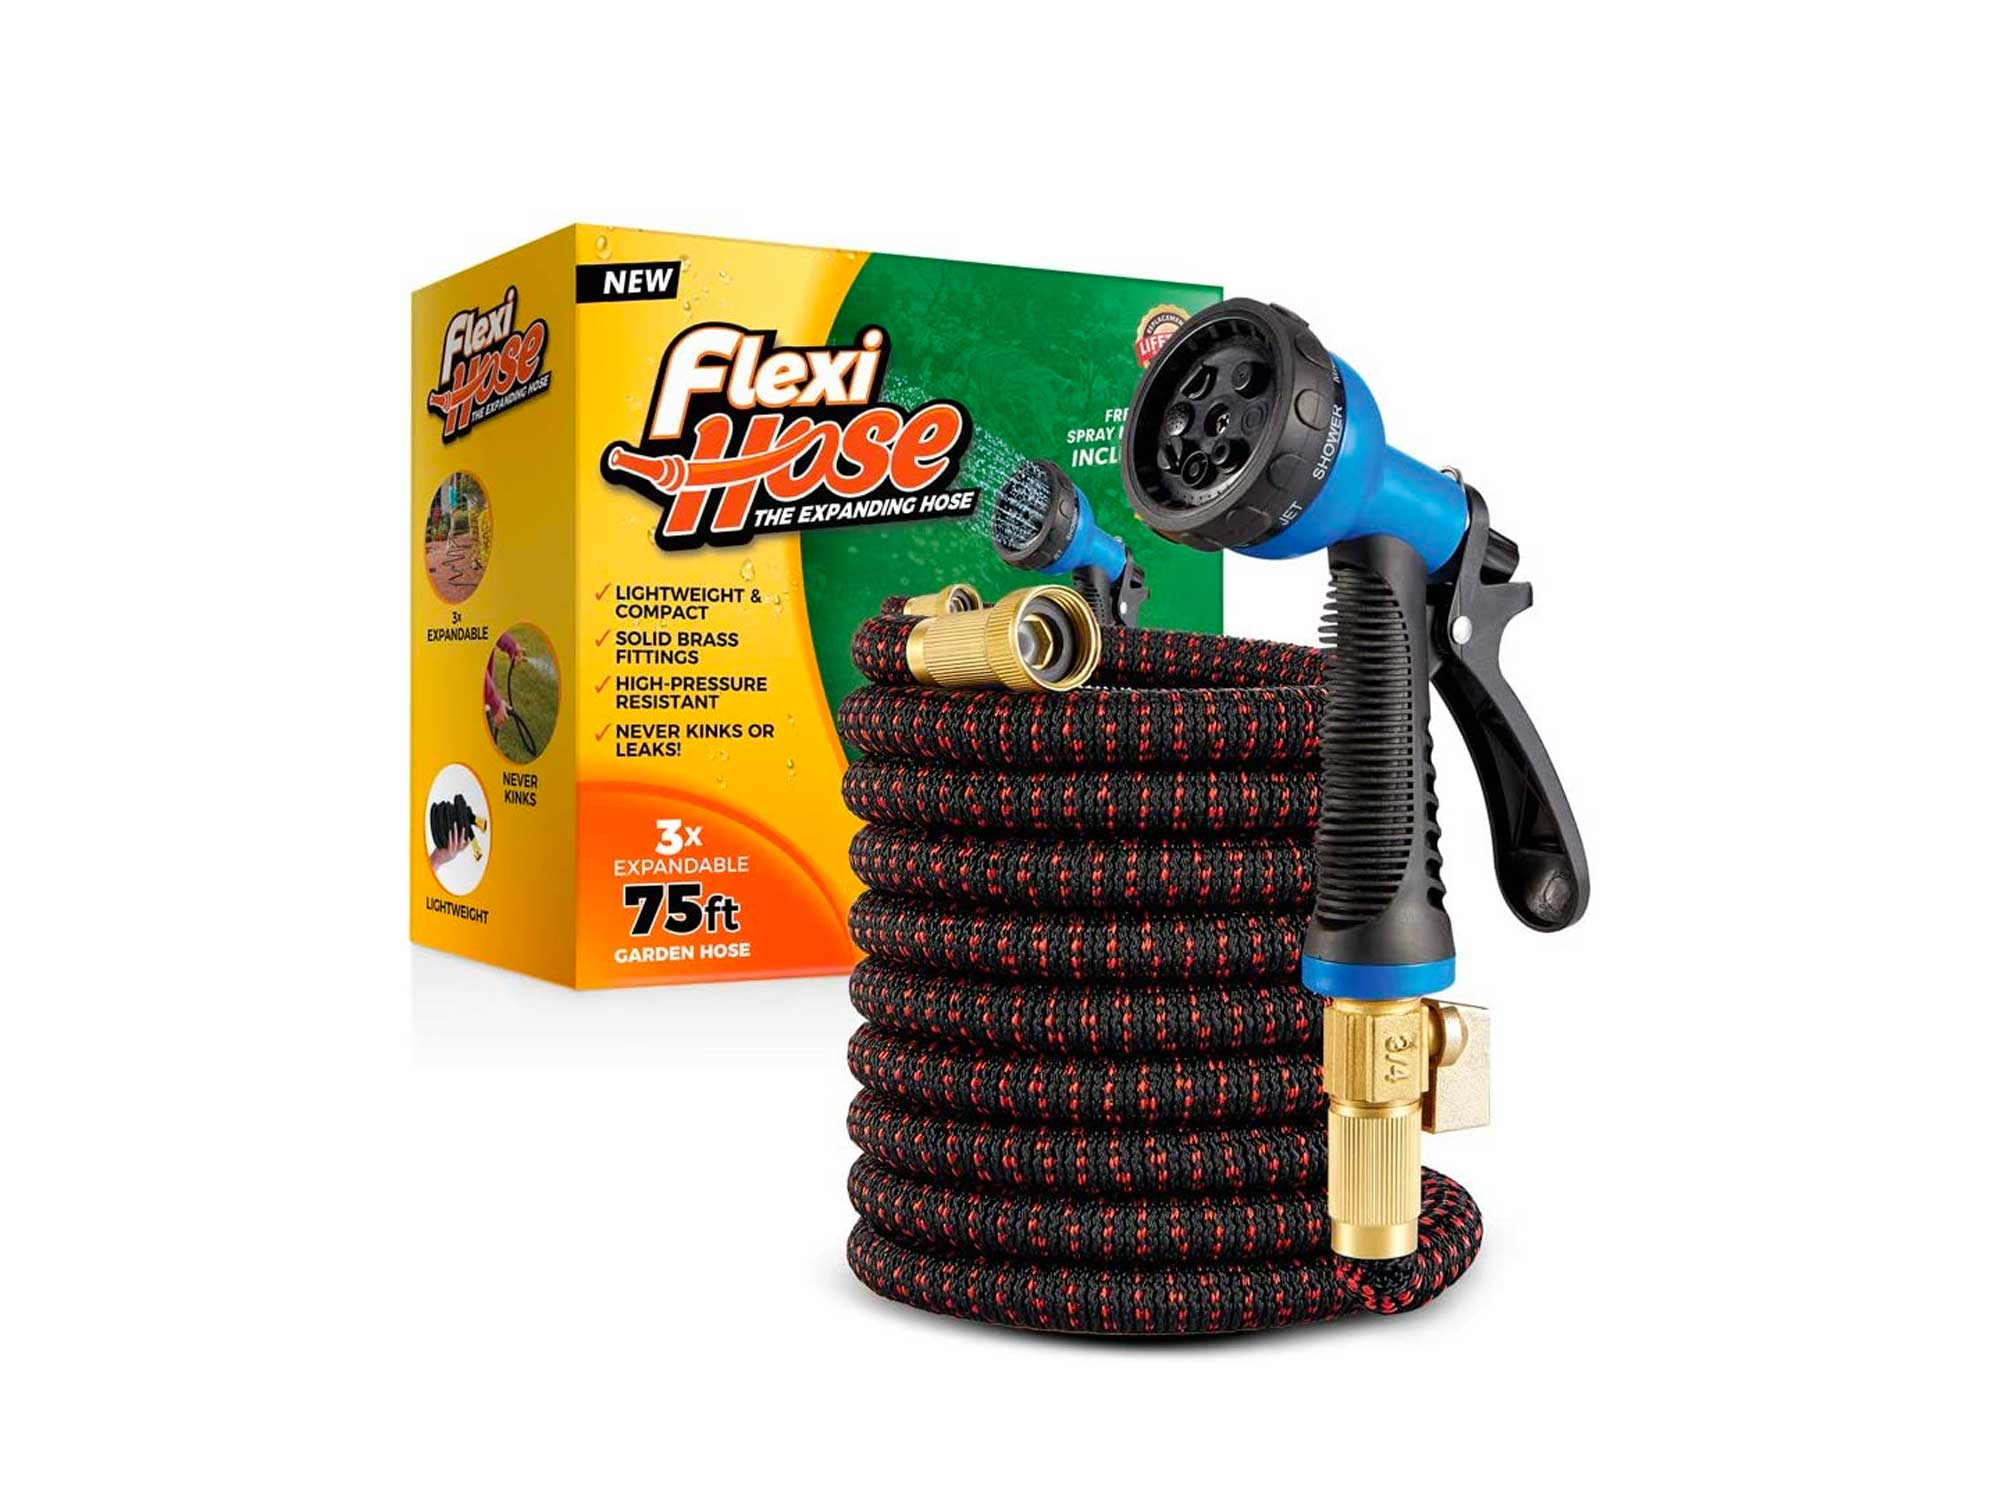 Flexi Hose Lightweight Expandable Garden Hose | No-Kink Flexibility - Extra Strength with 3/4 Inch Solid Brass Fittings & Double Latex Core | Rot, Crack, Leak Resistant (75 FT, Red/Black)